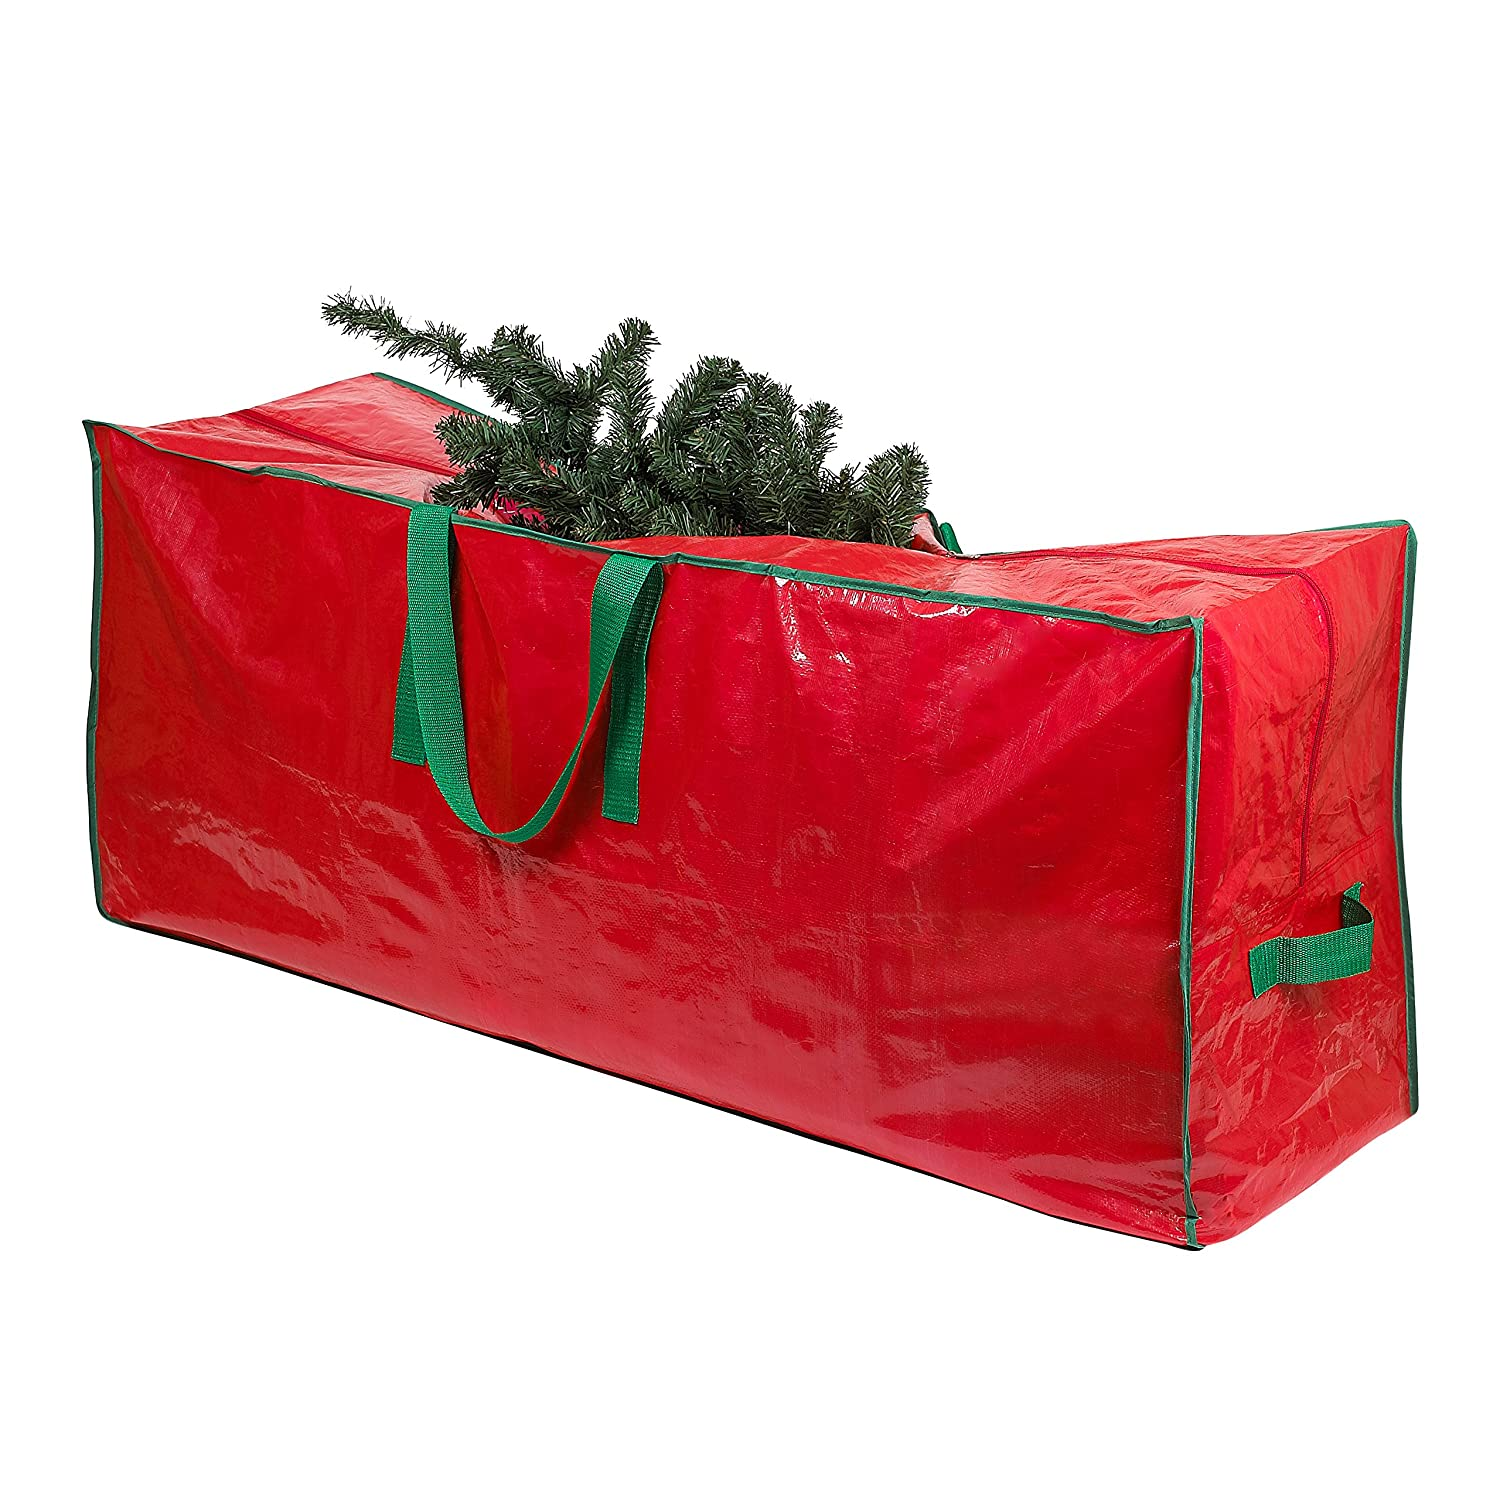 Christmas Tree Storage Bag Onl...